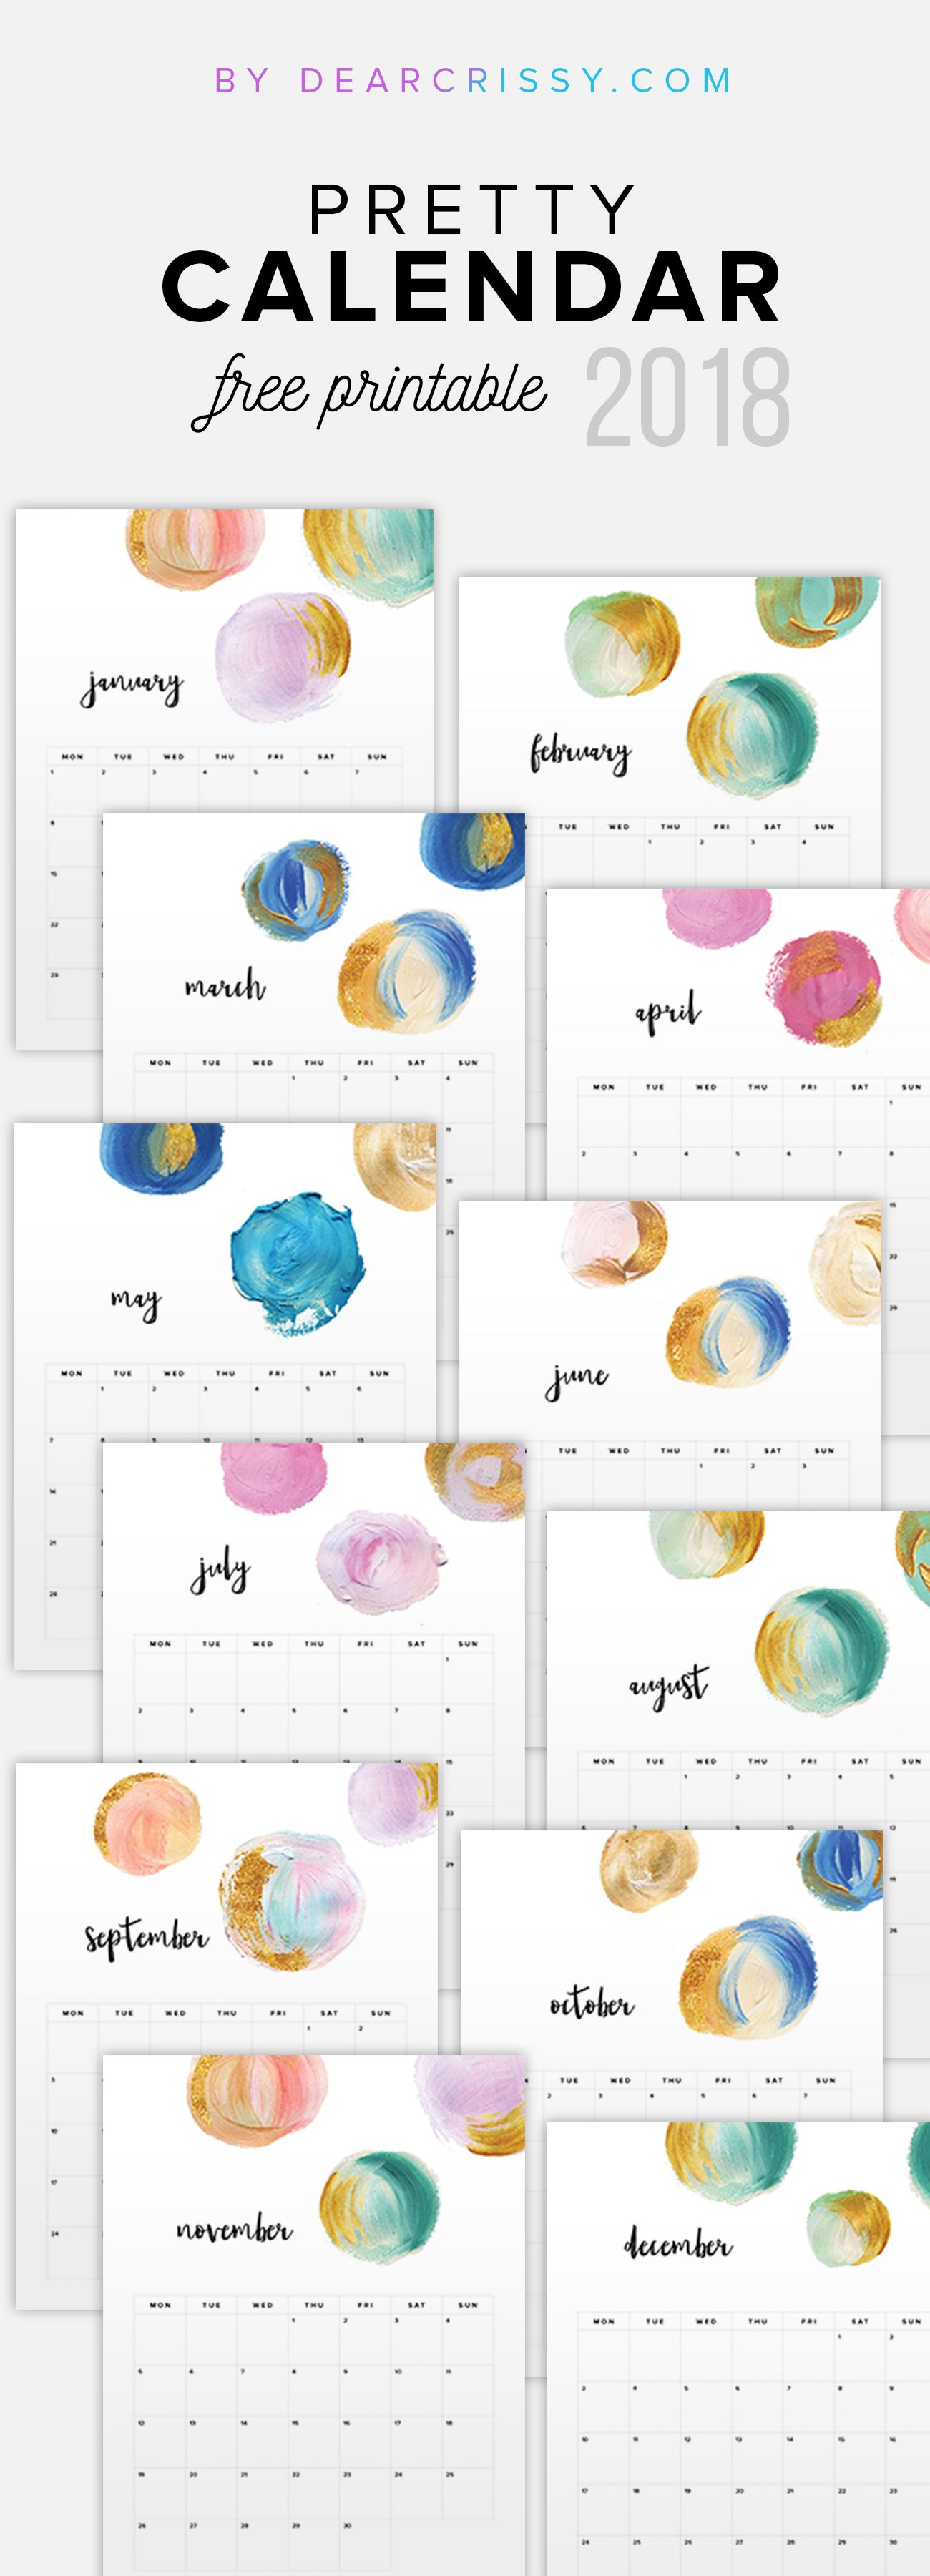 Wedding decorations gold and pink december 2018 Free  Printable Calendar  Pretty Painted Calendar Printable